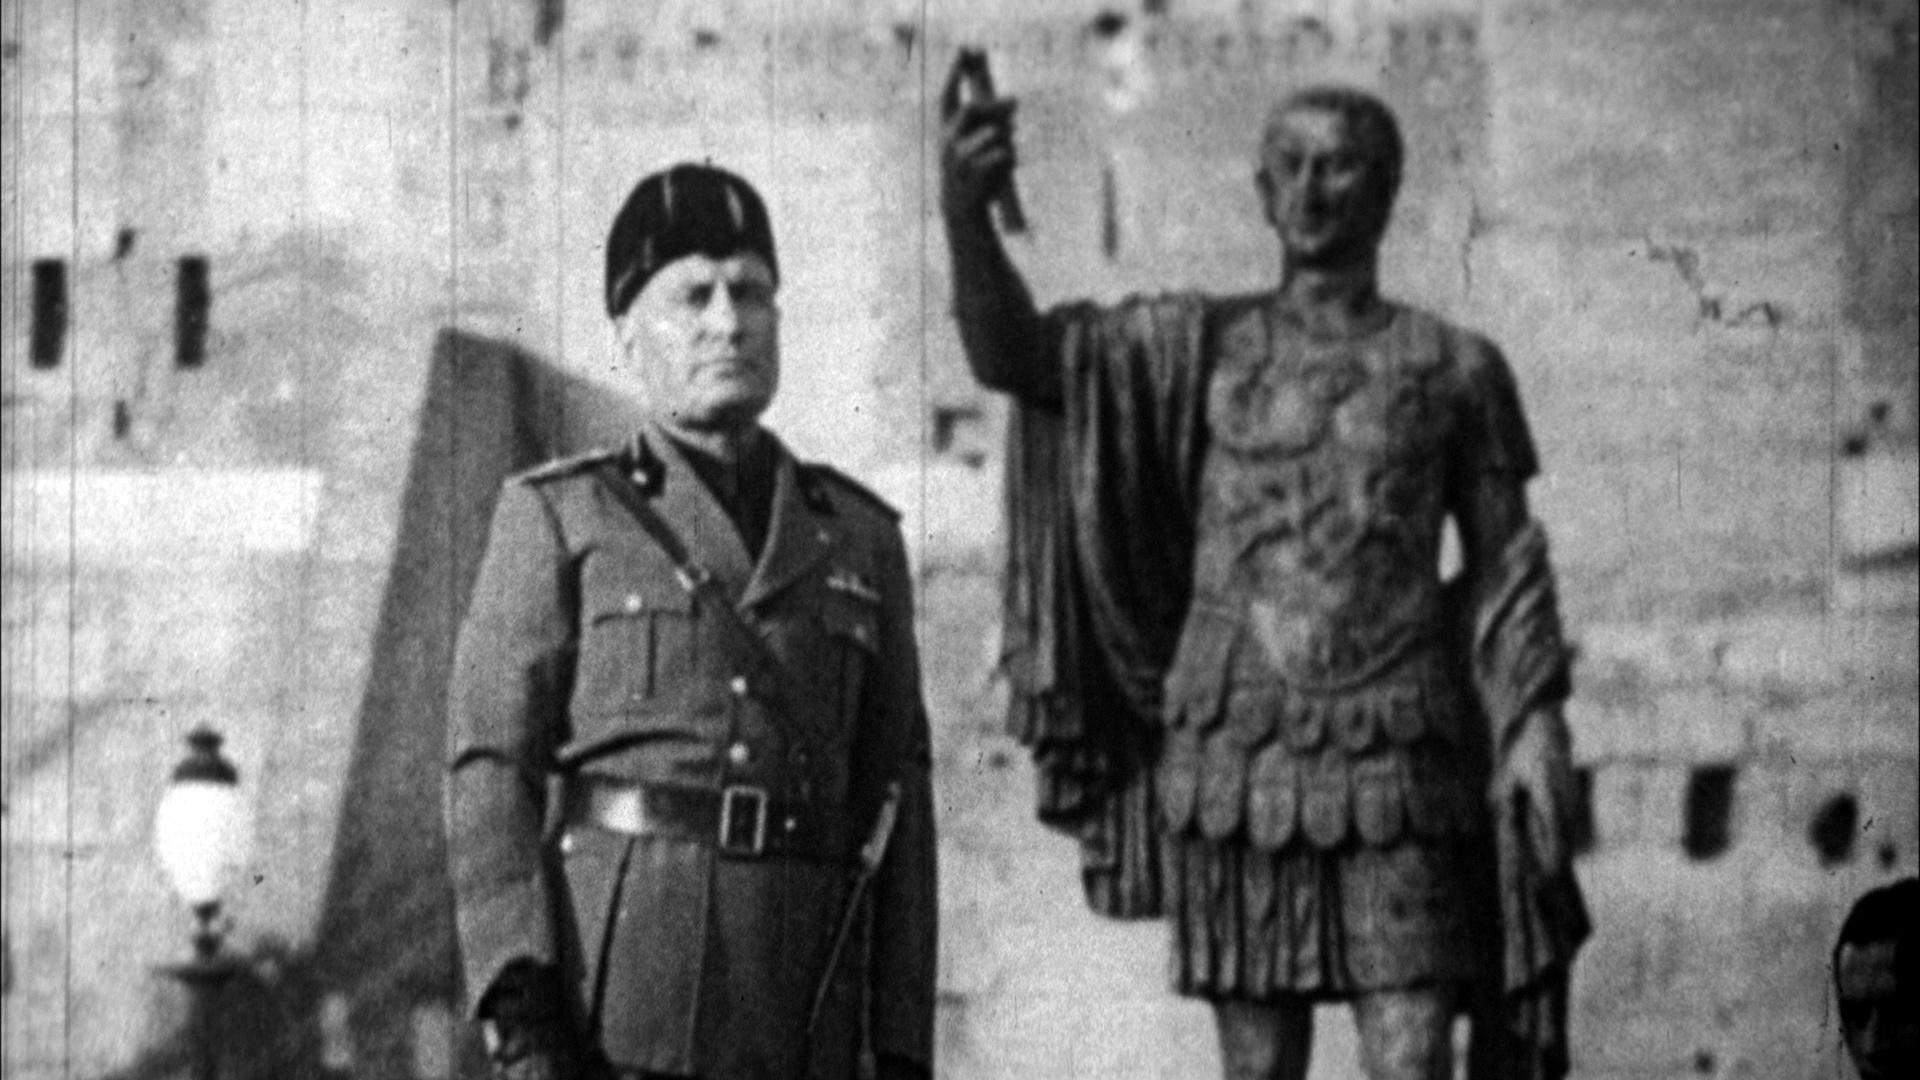 The Dictator S Playbook Ep 3 Benito Mussolini Prologue Kcts 9